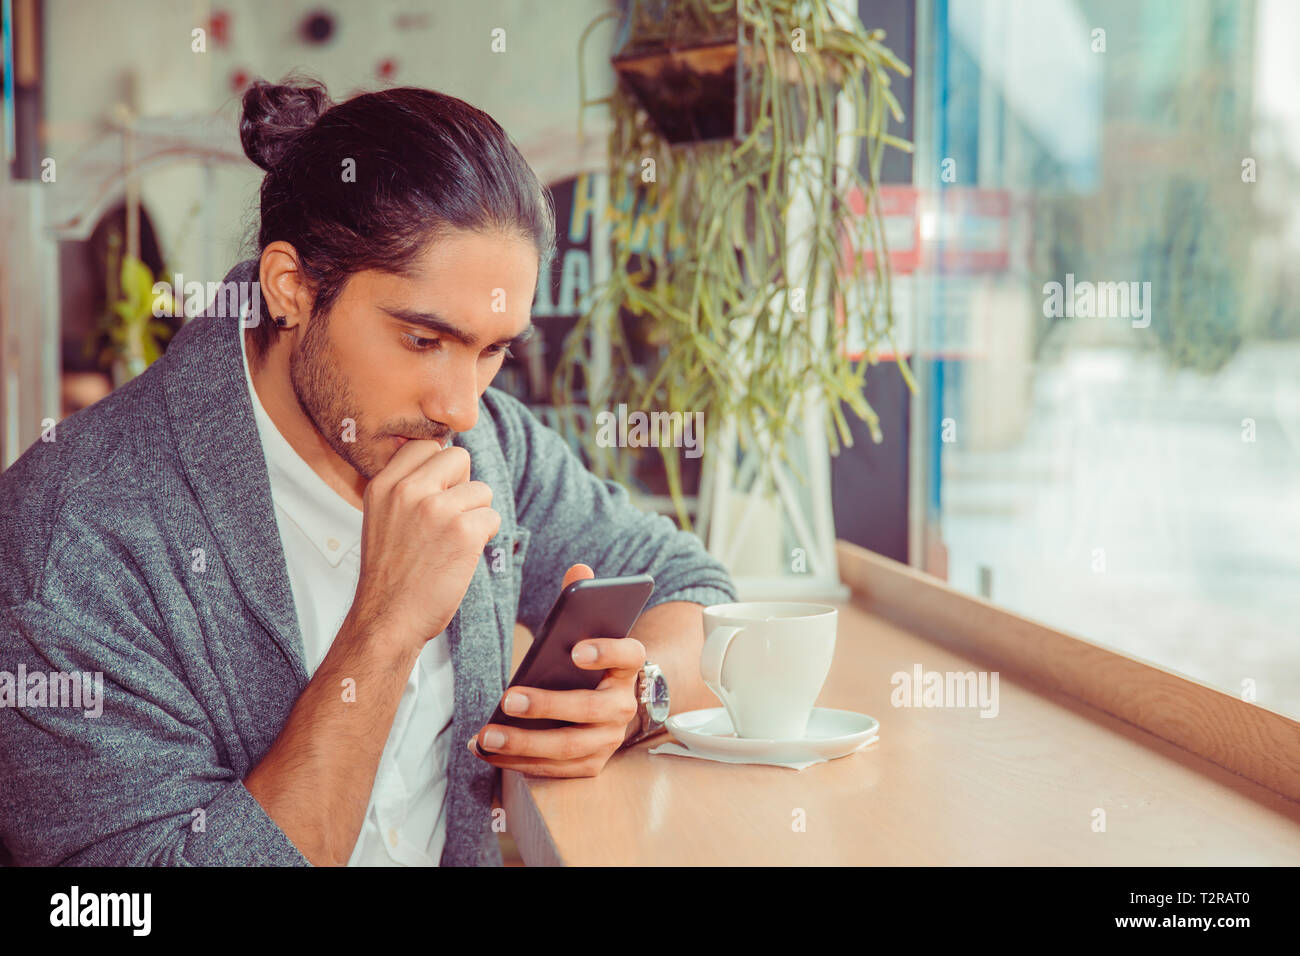 Serious man looking at phone, worried by news he received. Closeup portrait of a handsome guy wearing white shirt, gray blouse sitting near window at  Stock Photo